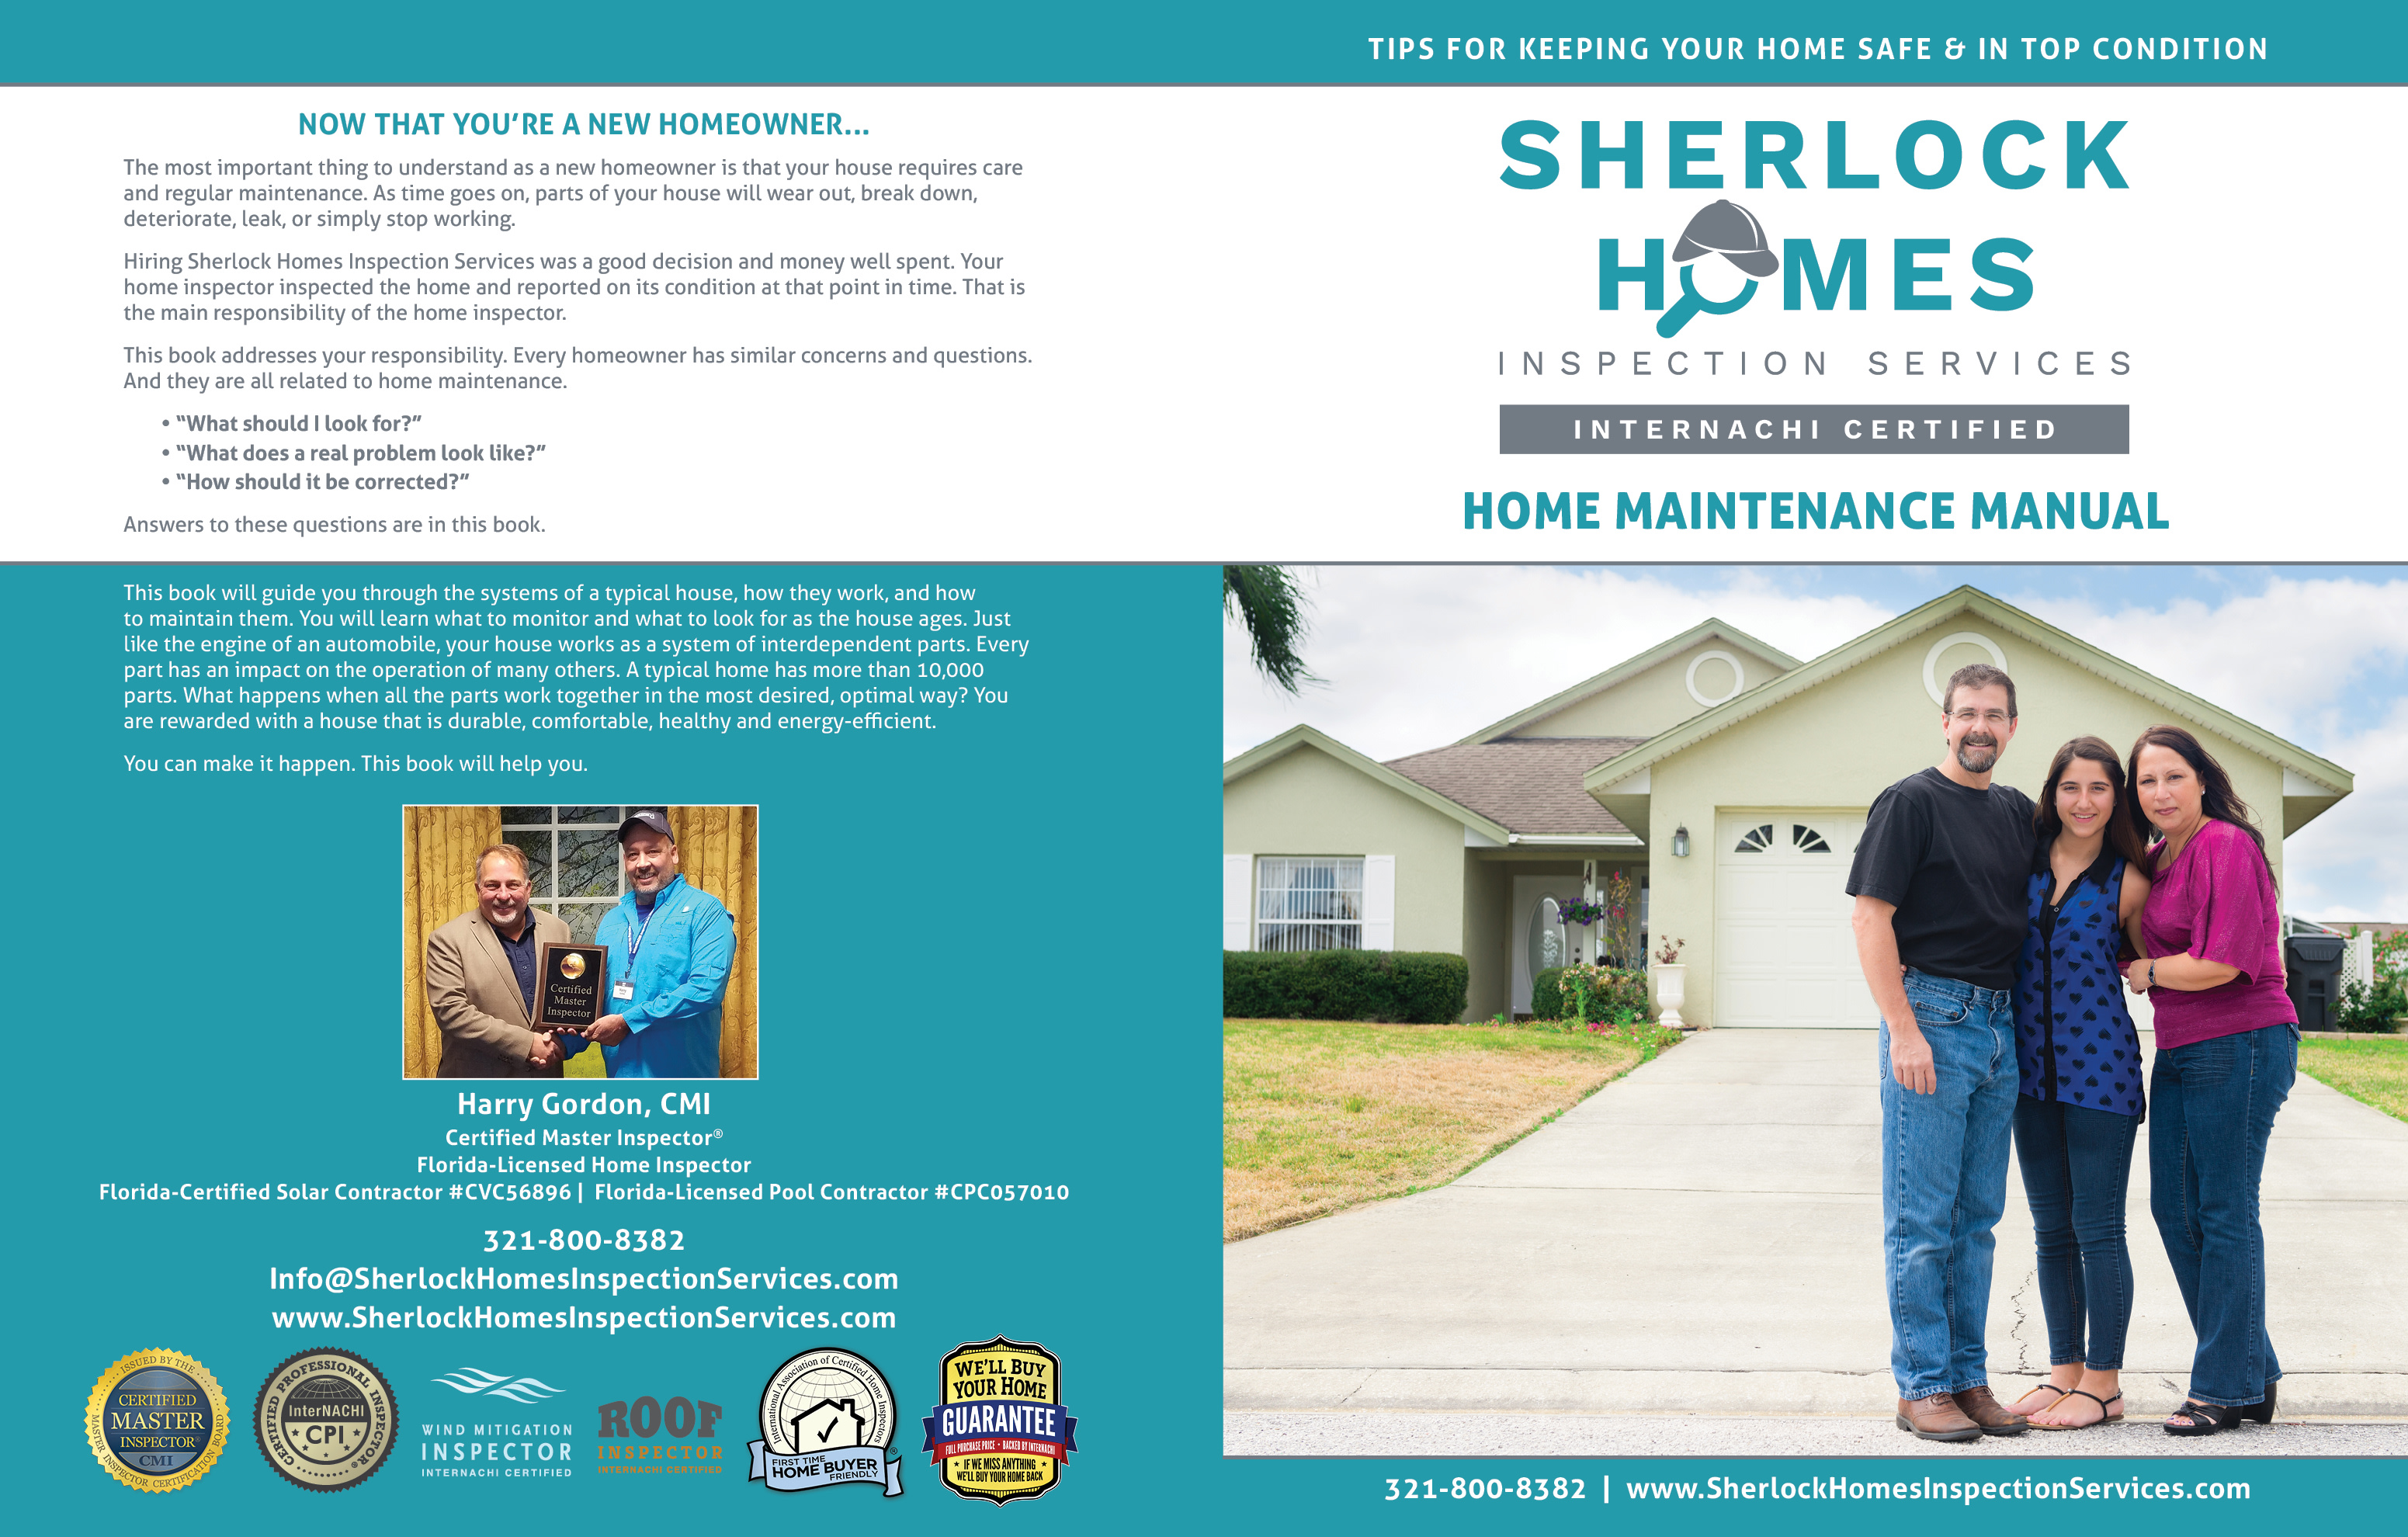 Custom Home Maintenance Book for Sherlock Home Inspection Services